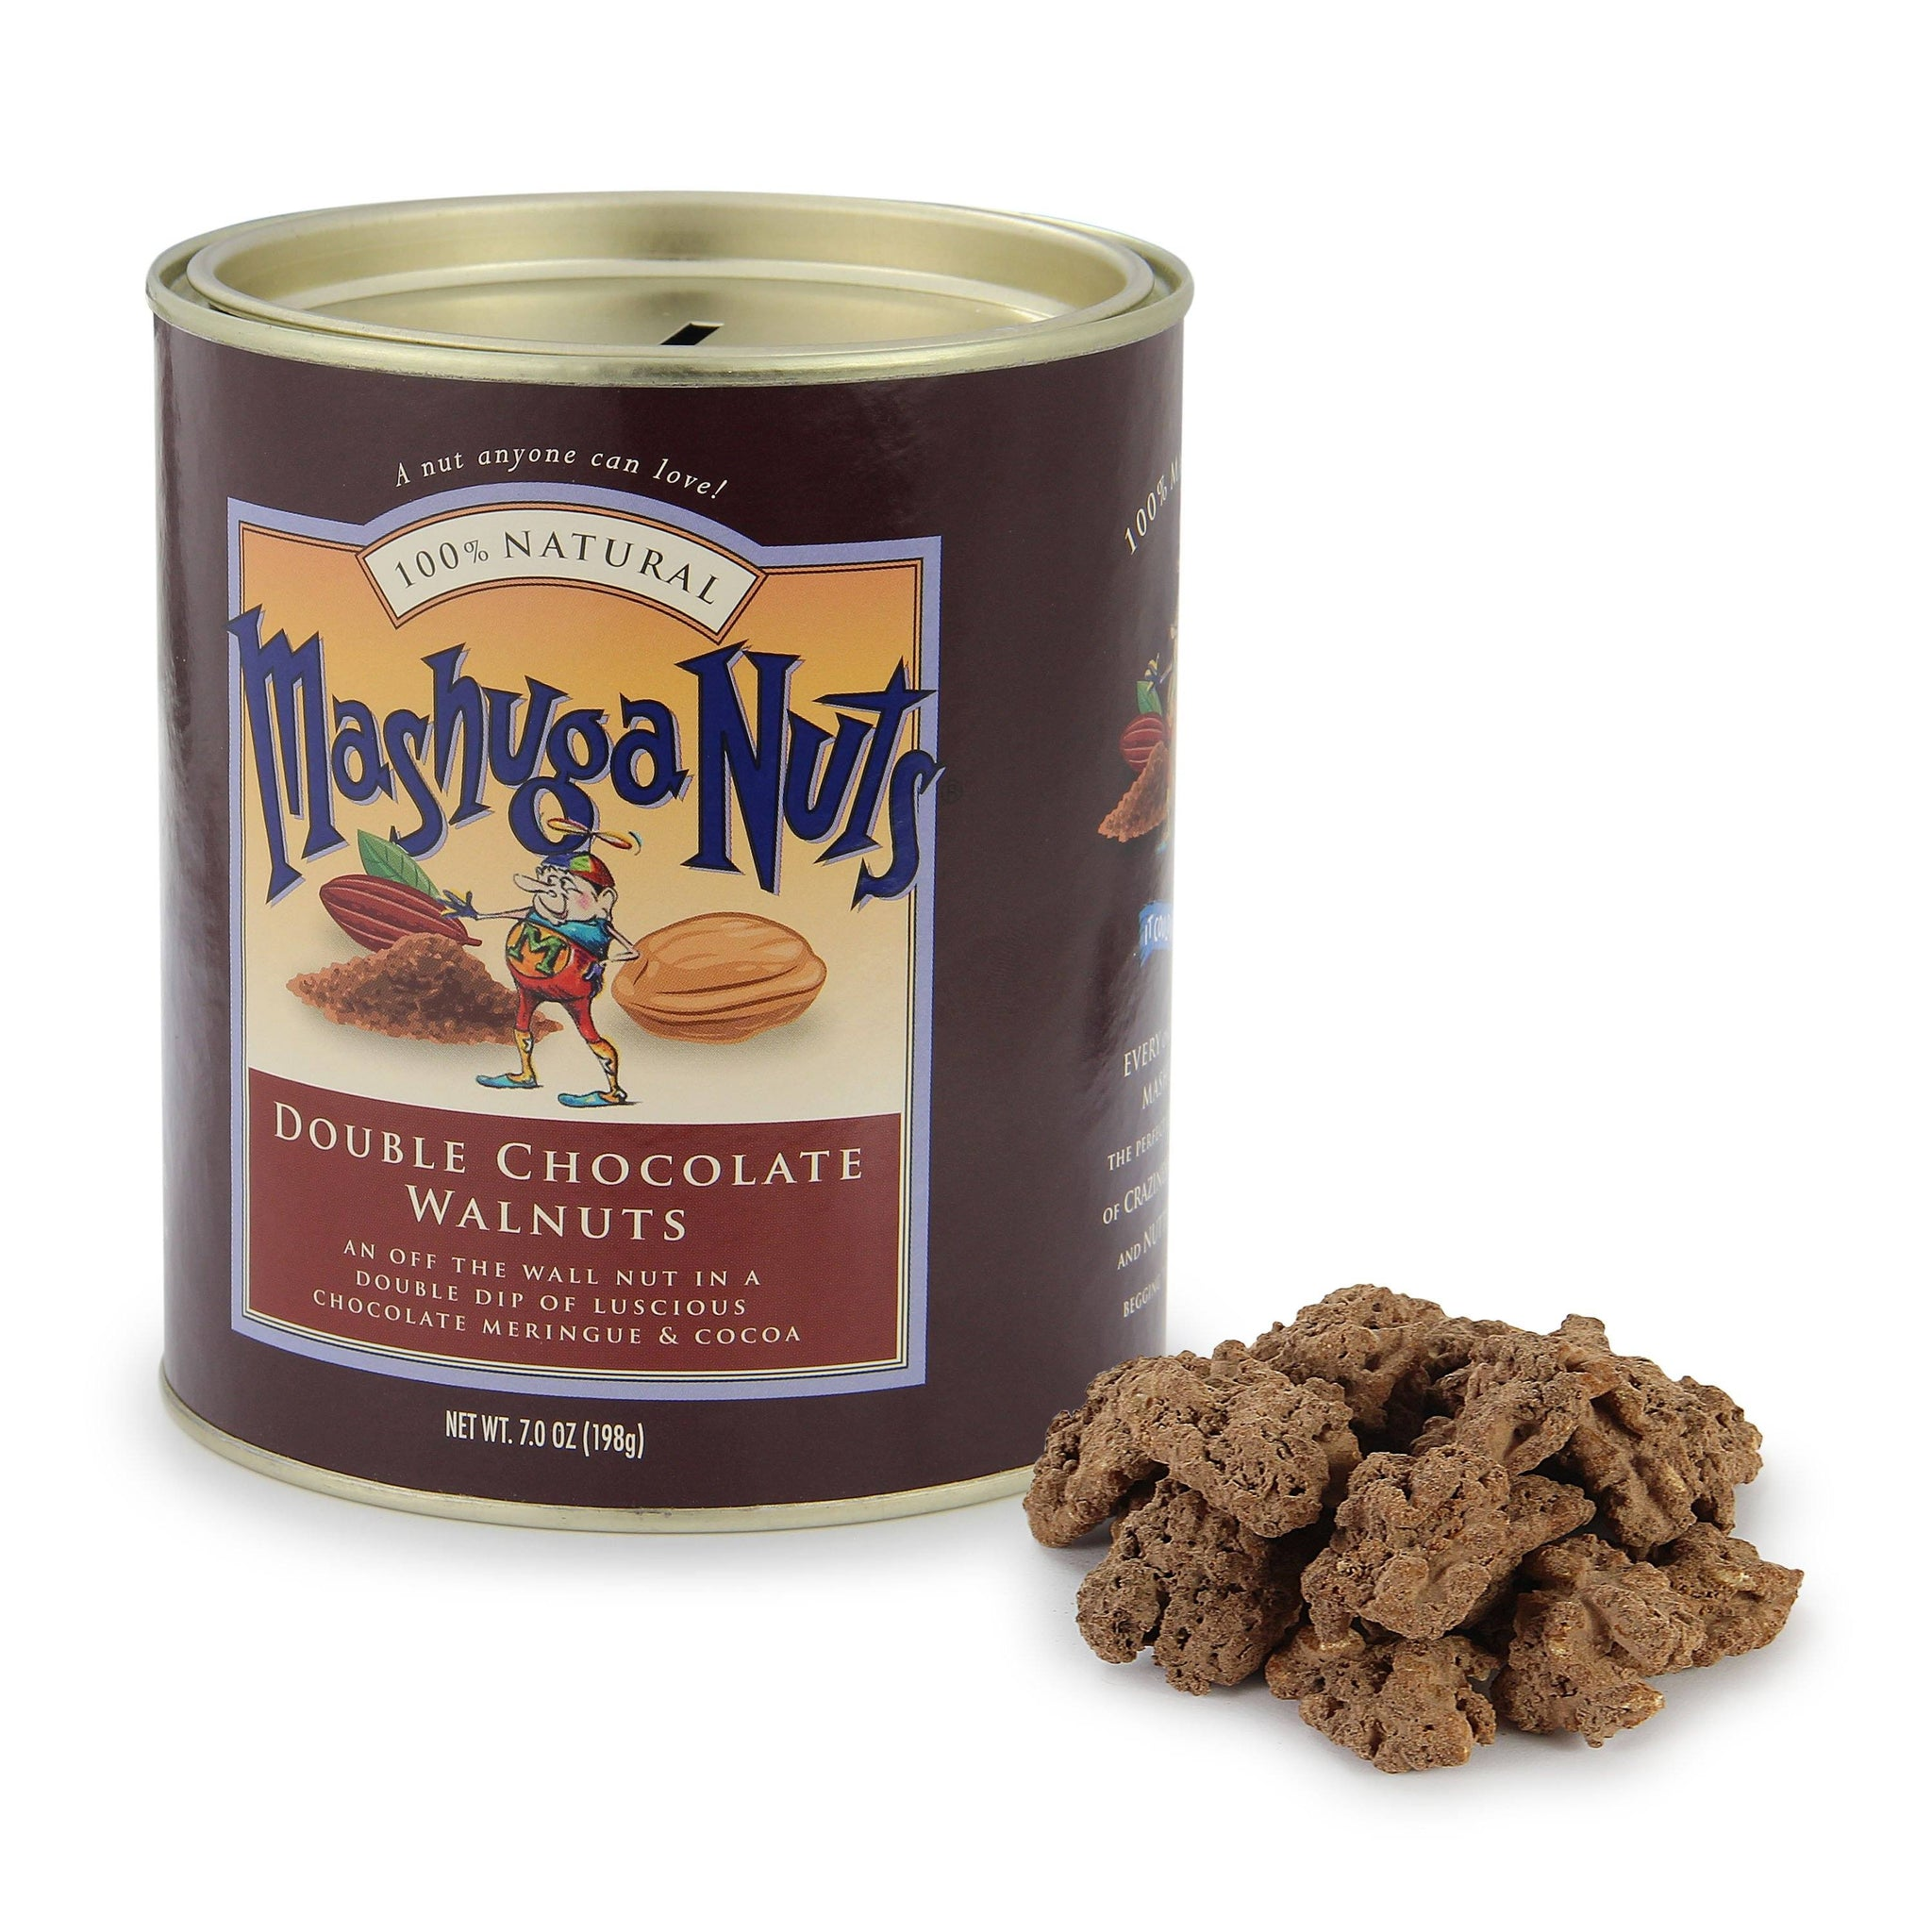 Torn Ranch Mashuga Nuts Duo Carrier (Tin) in Gourmet Nuts. Pile of nuts next to container.